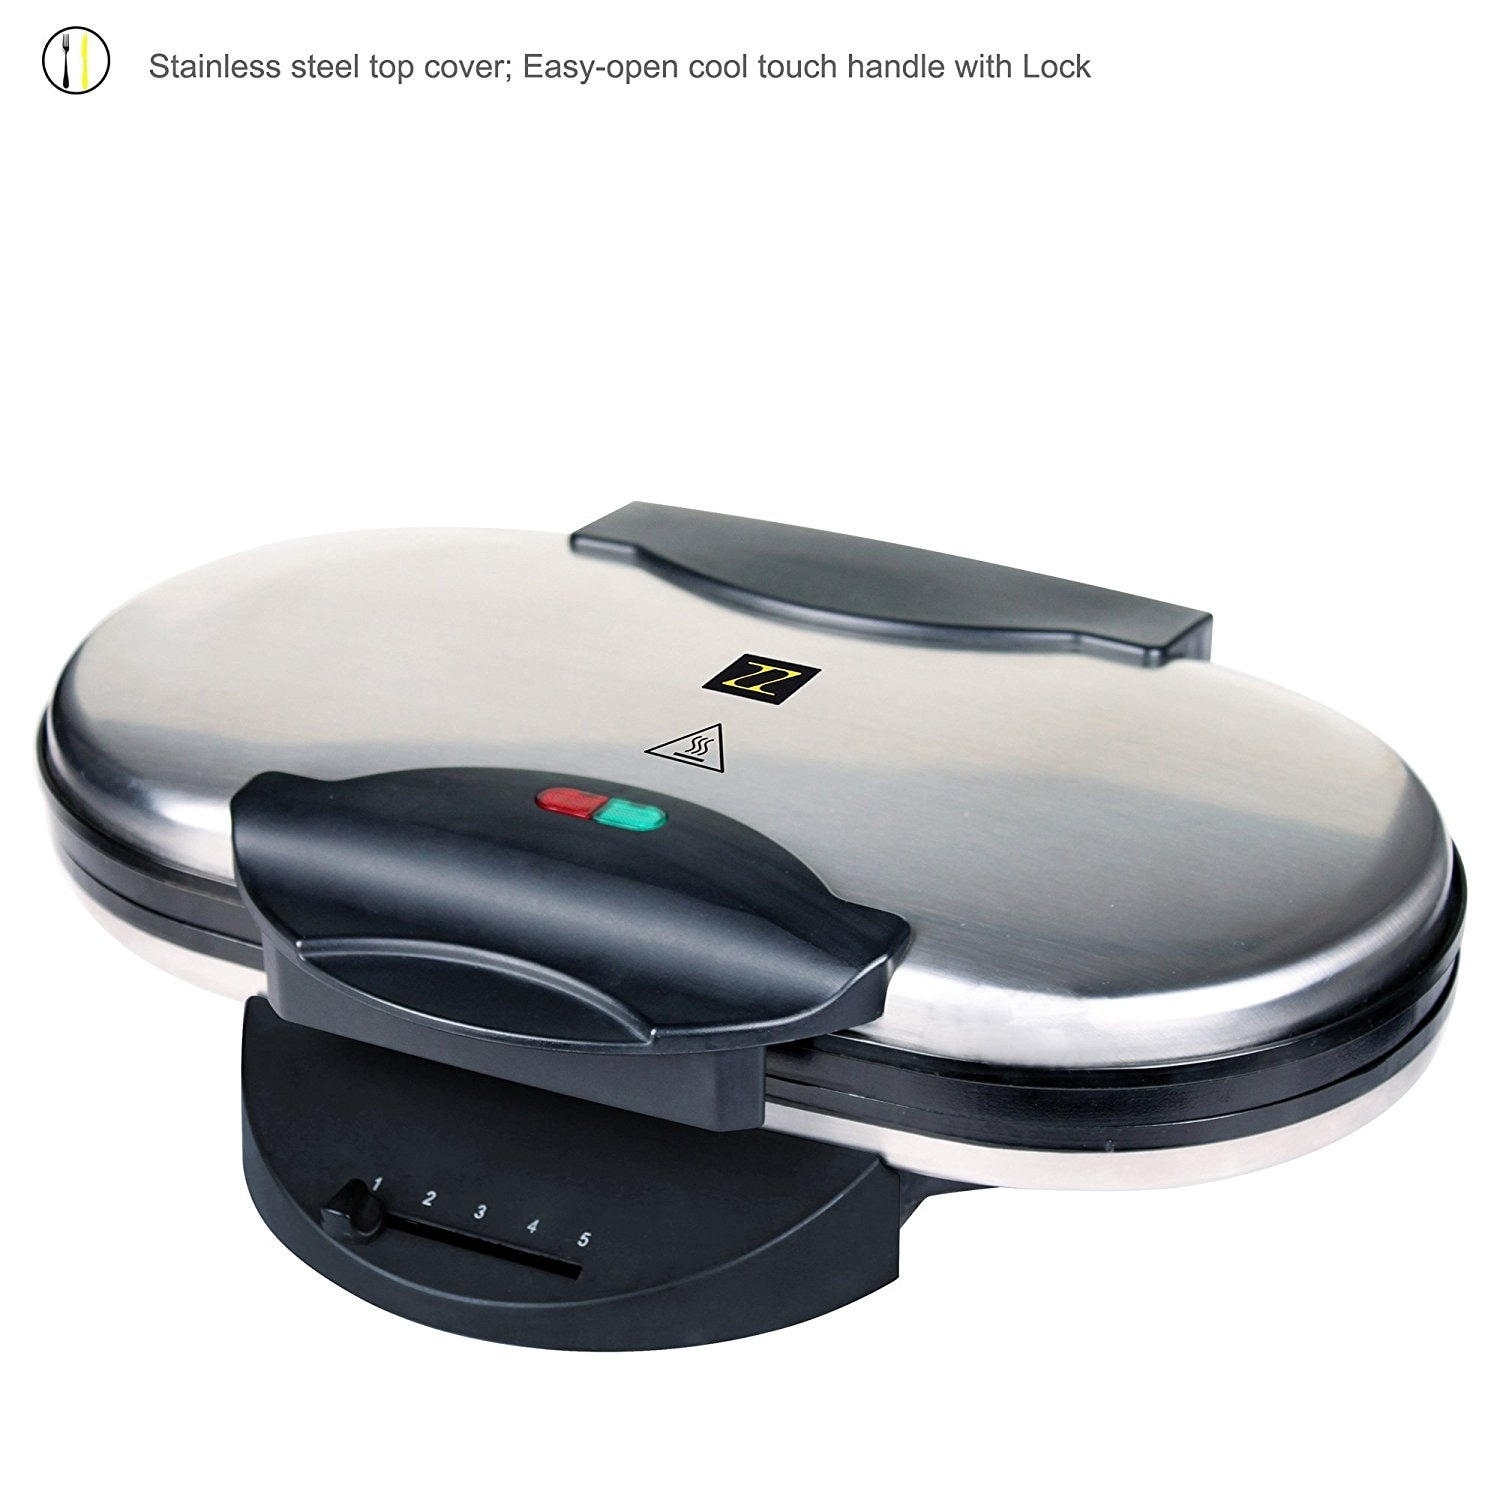 Zz Wf330 10 In 1 Heart Waffle Maker With Non Stick Plate 1200w Black Silver Overstock 14335868